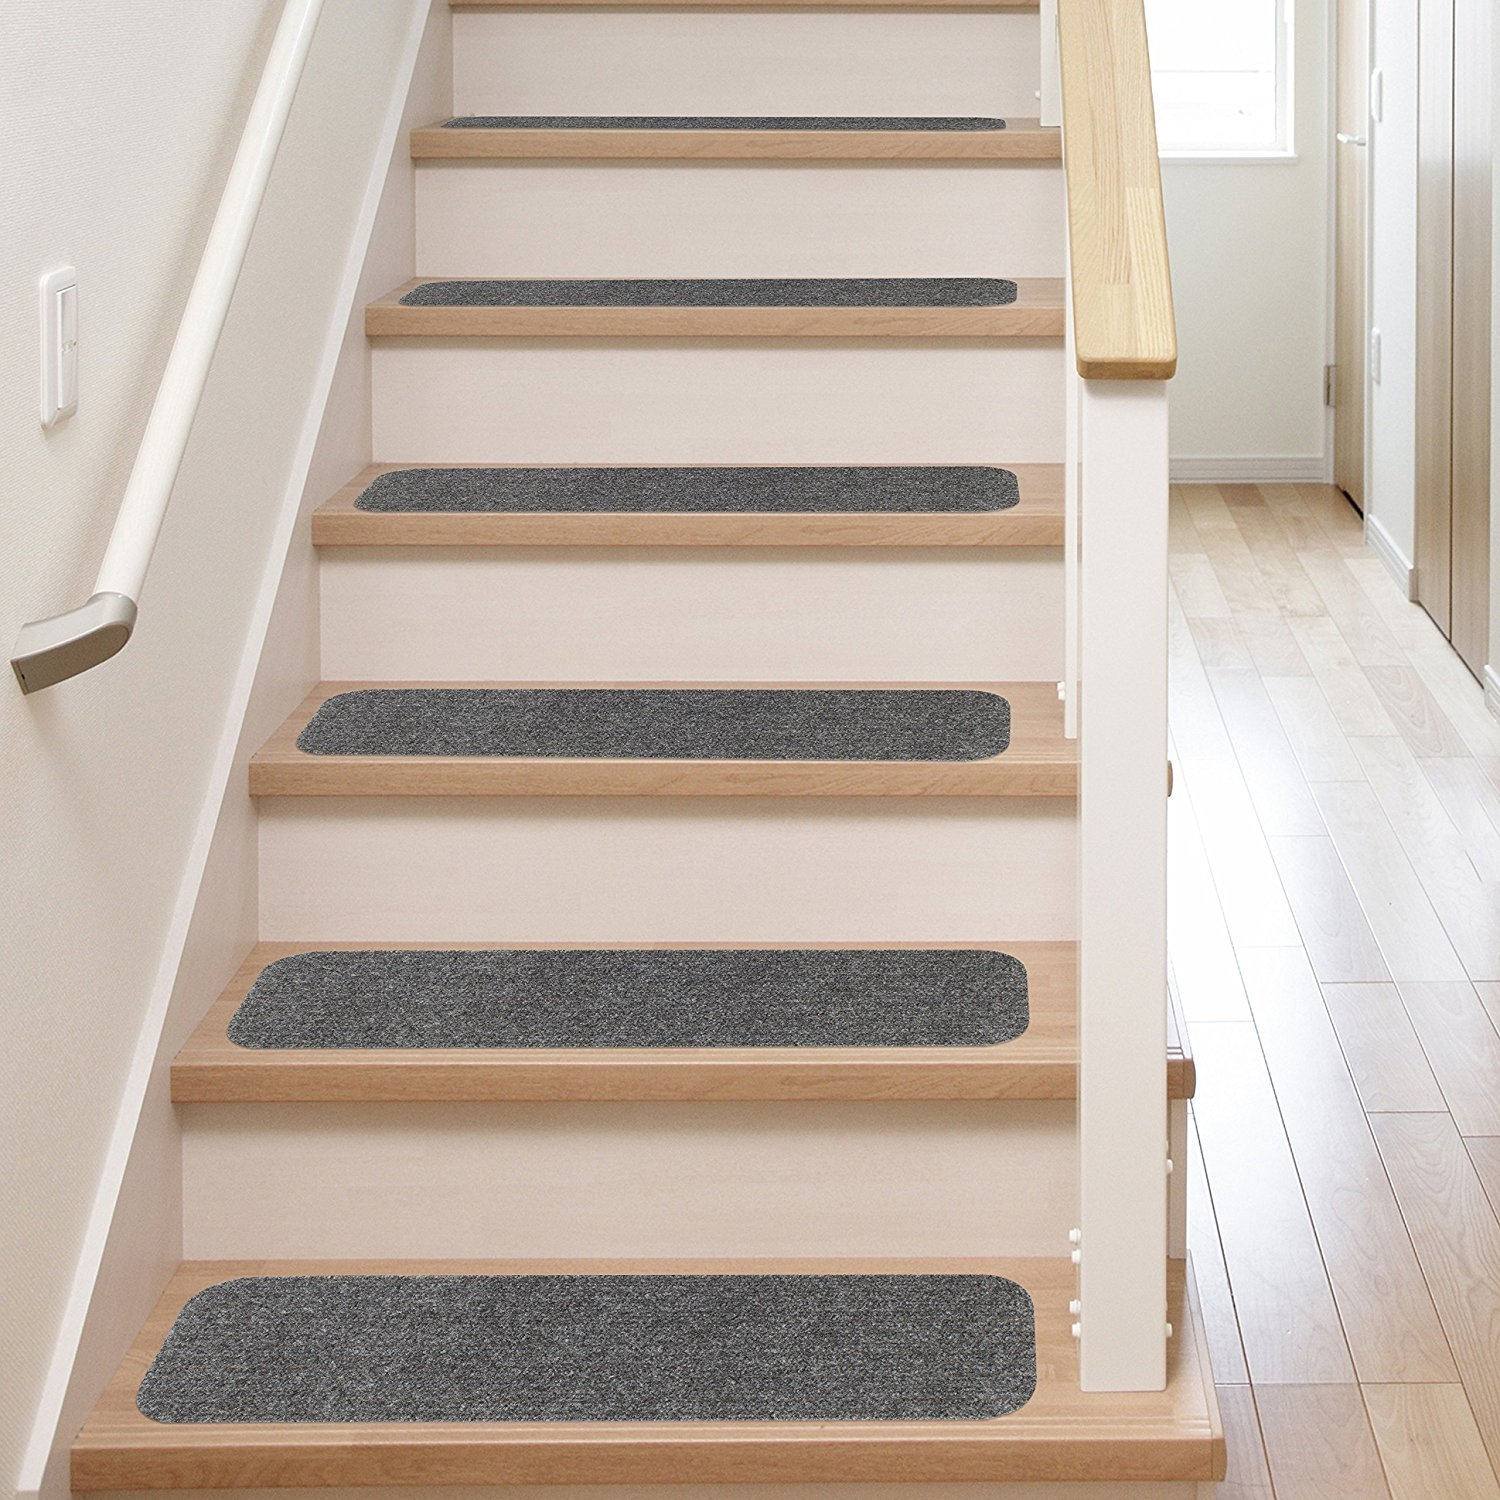 Amazon Best Sellers Best Staircase Step Treads With Non Slip Carpet Stair Treads Indoor (Image 1 of 15)